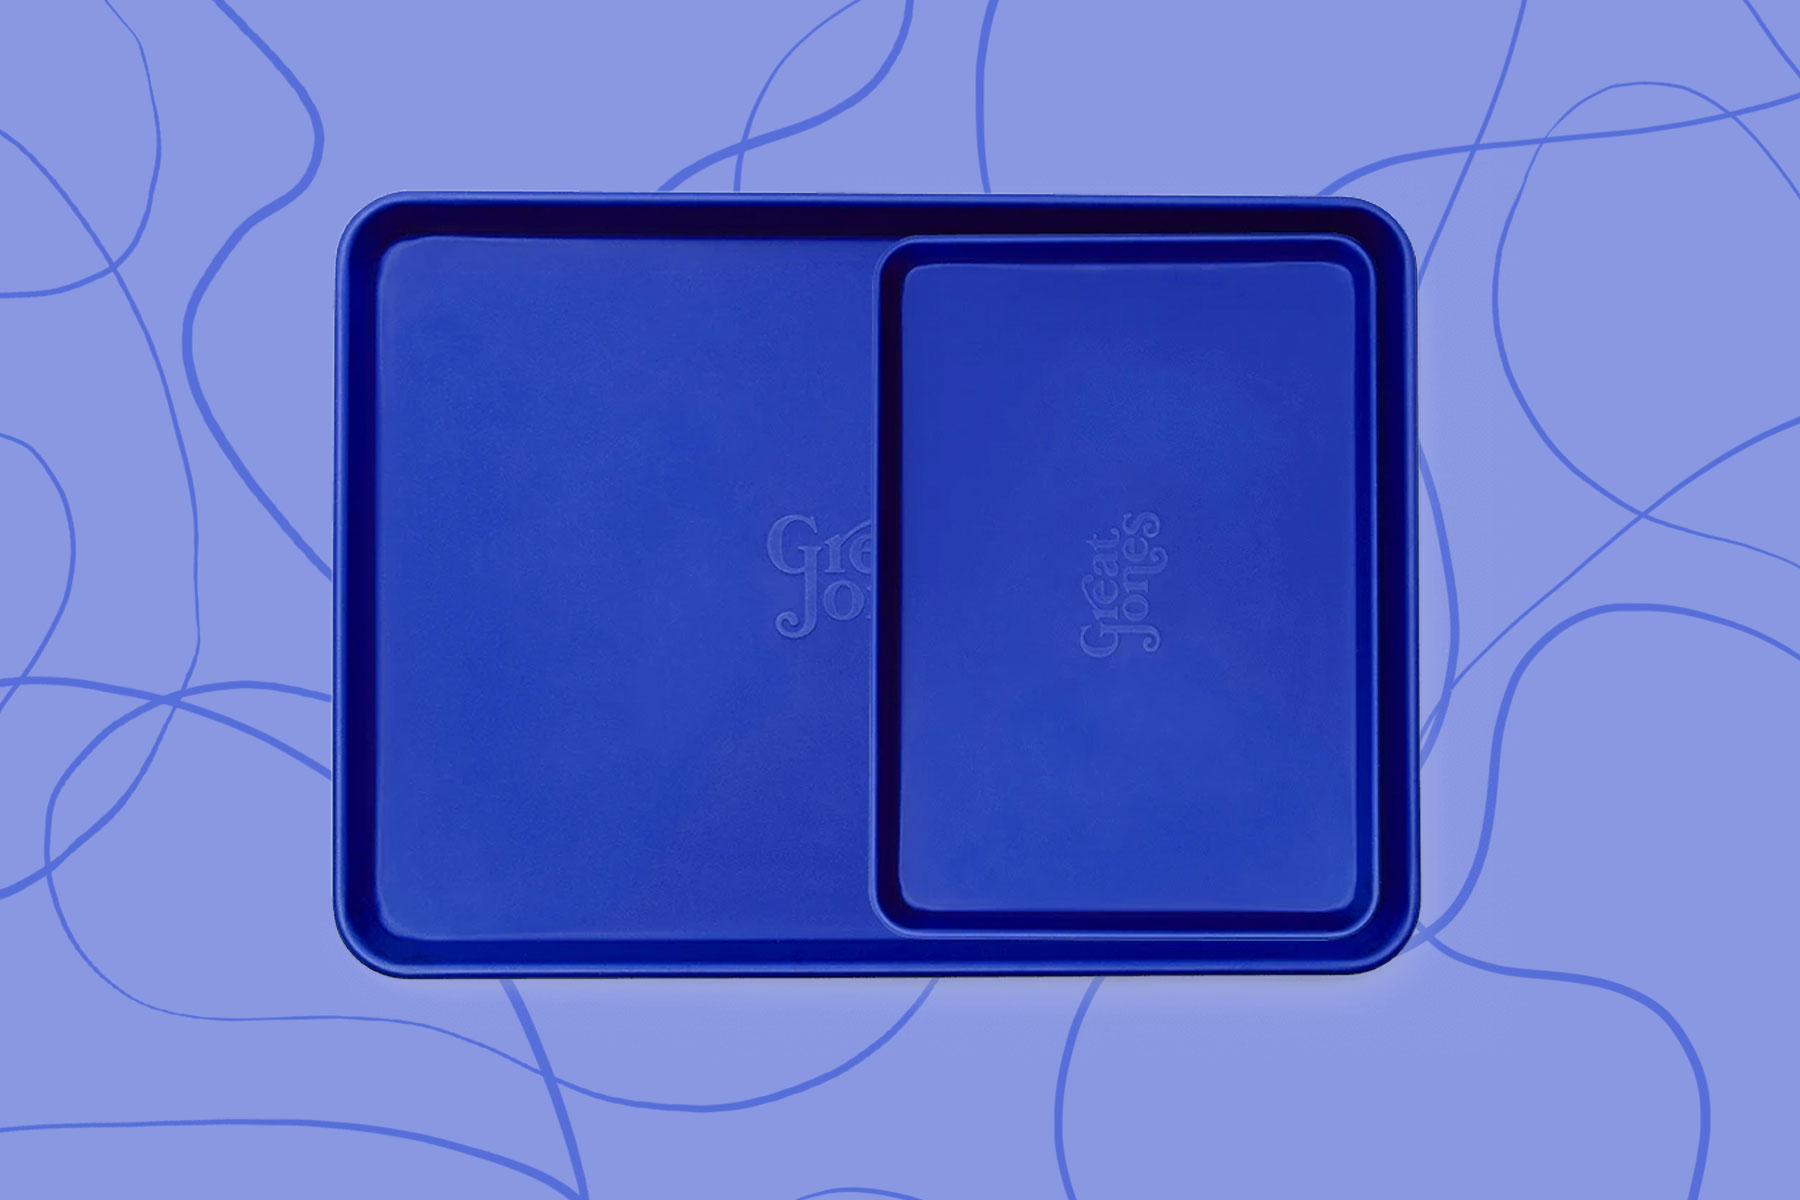 Royal blue baking sheets